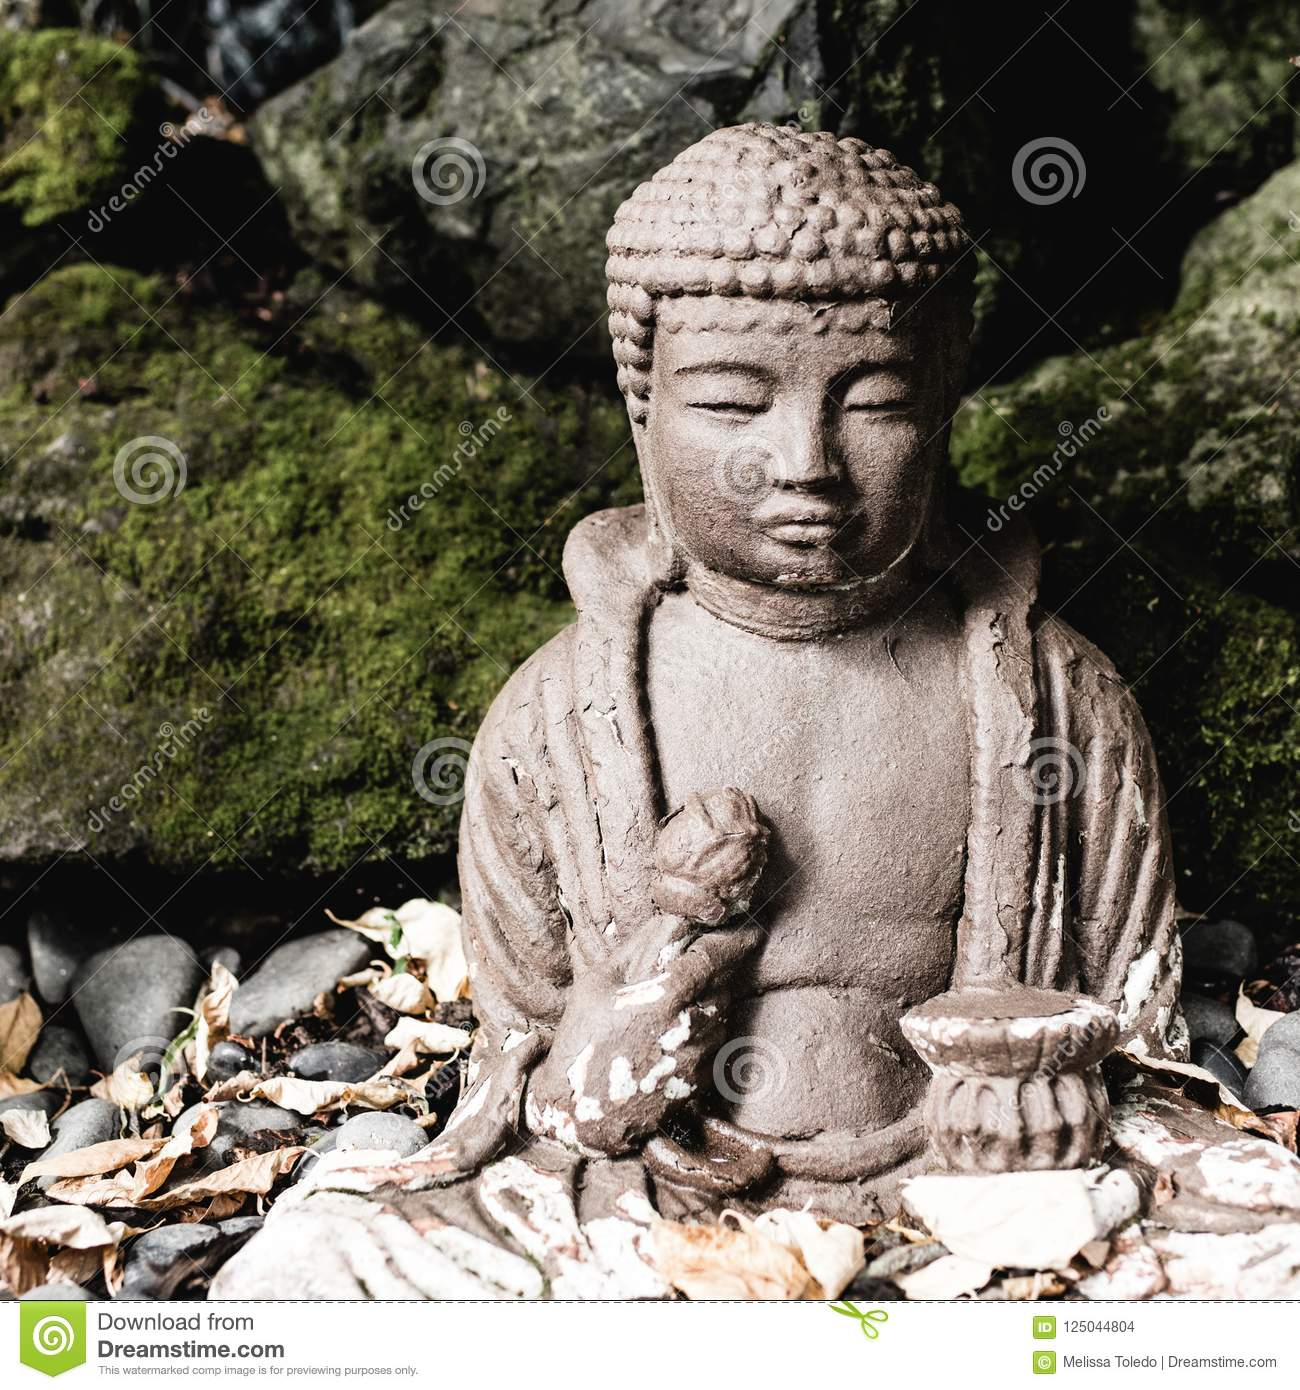 Download Buddha Statue In A Garden. Stock Photo. Image Of Oriental    125044804